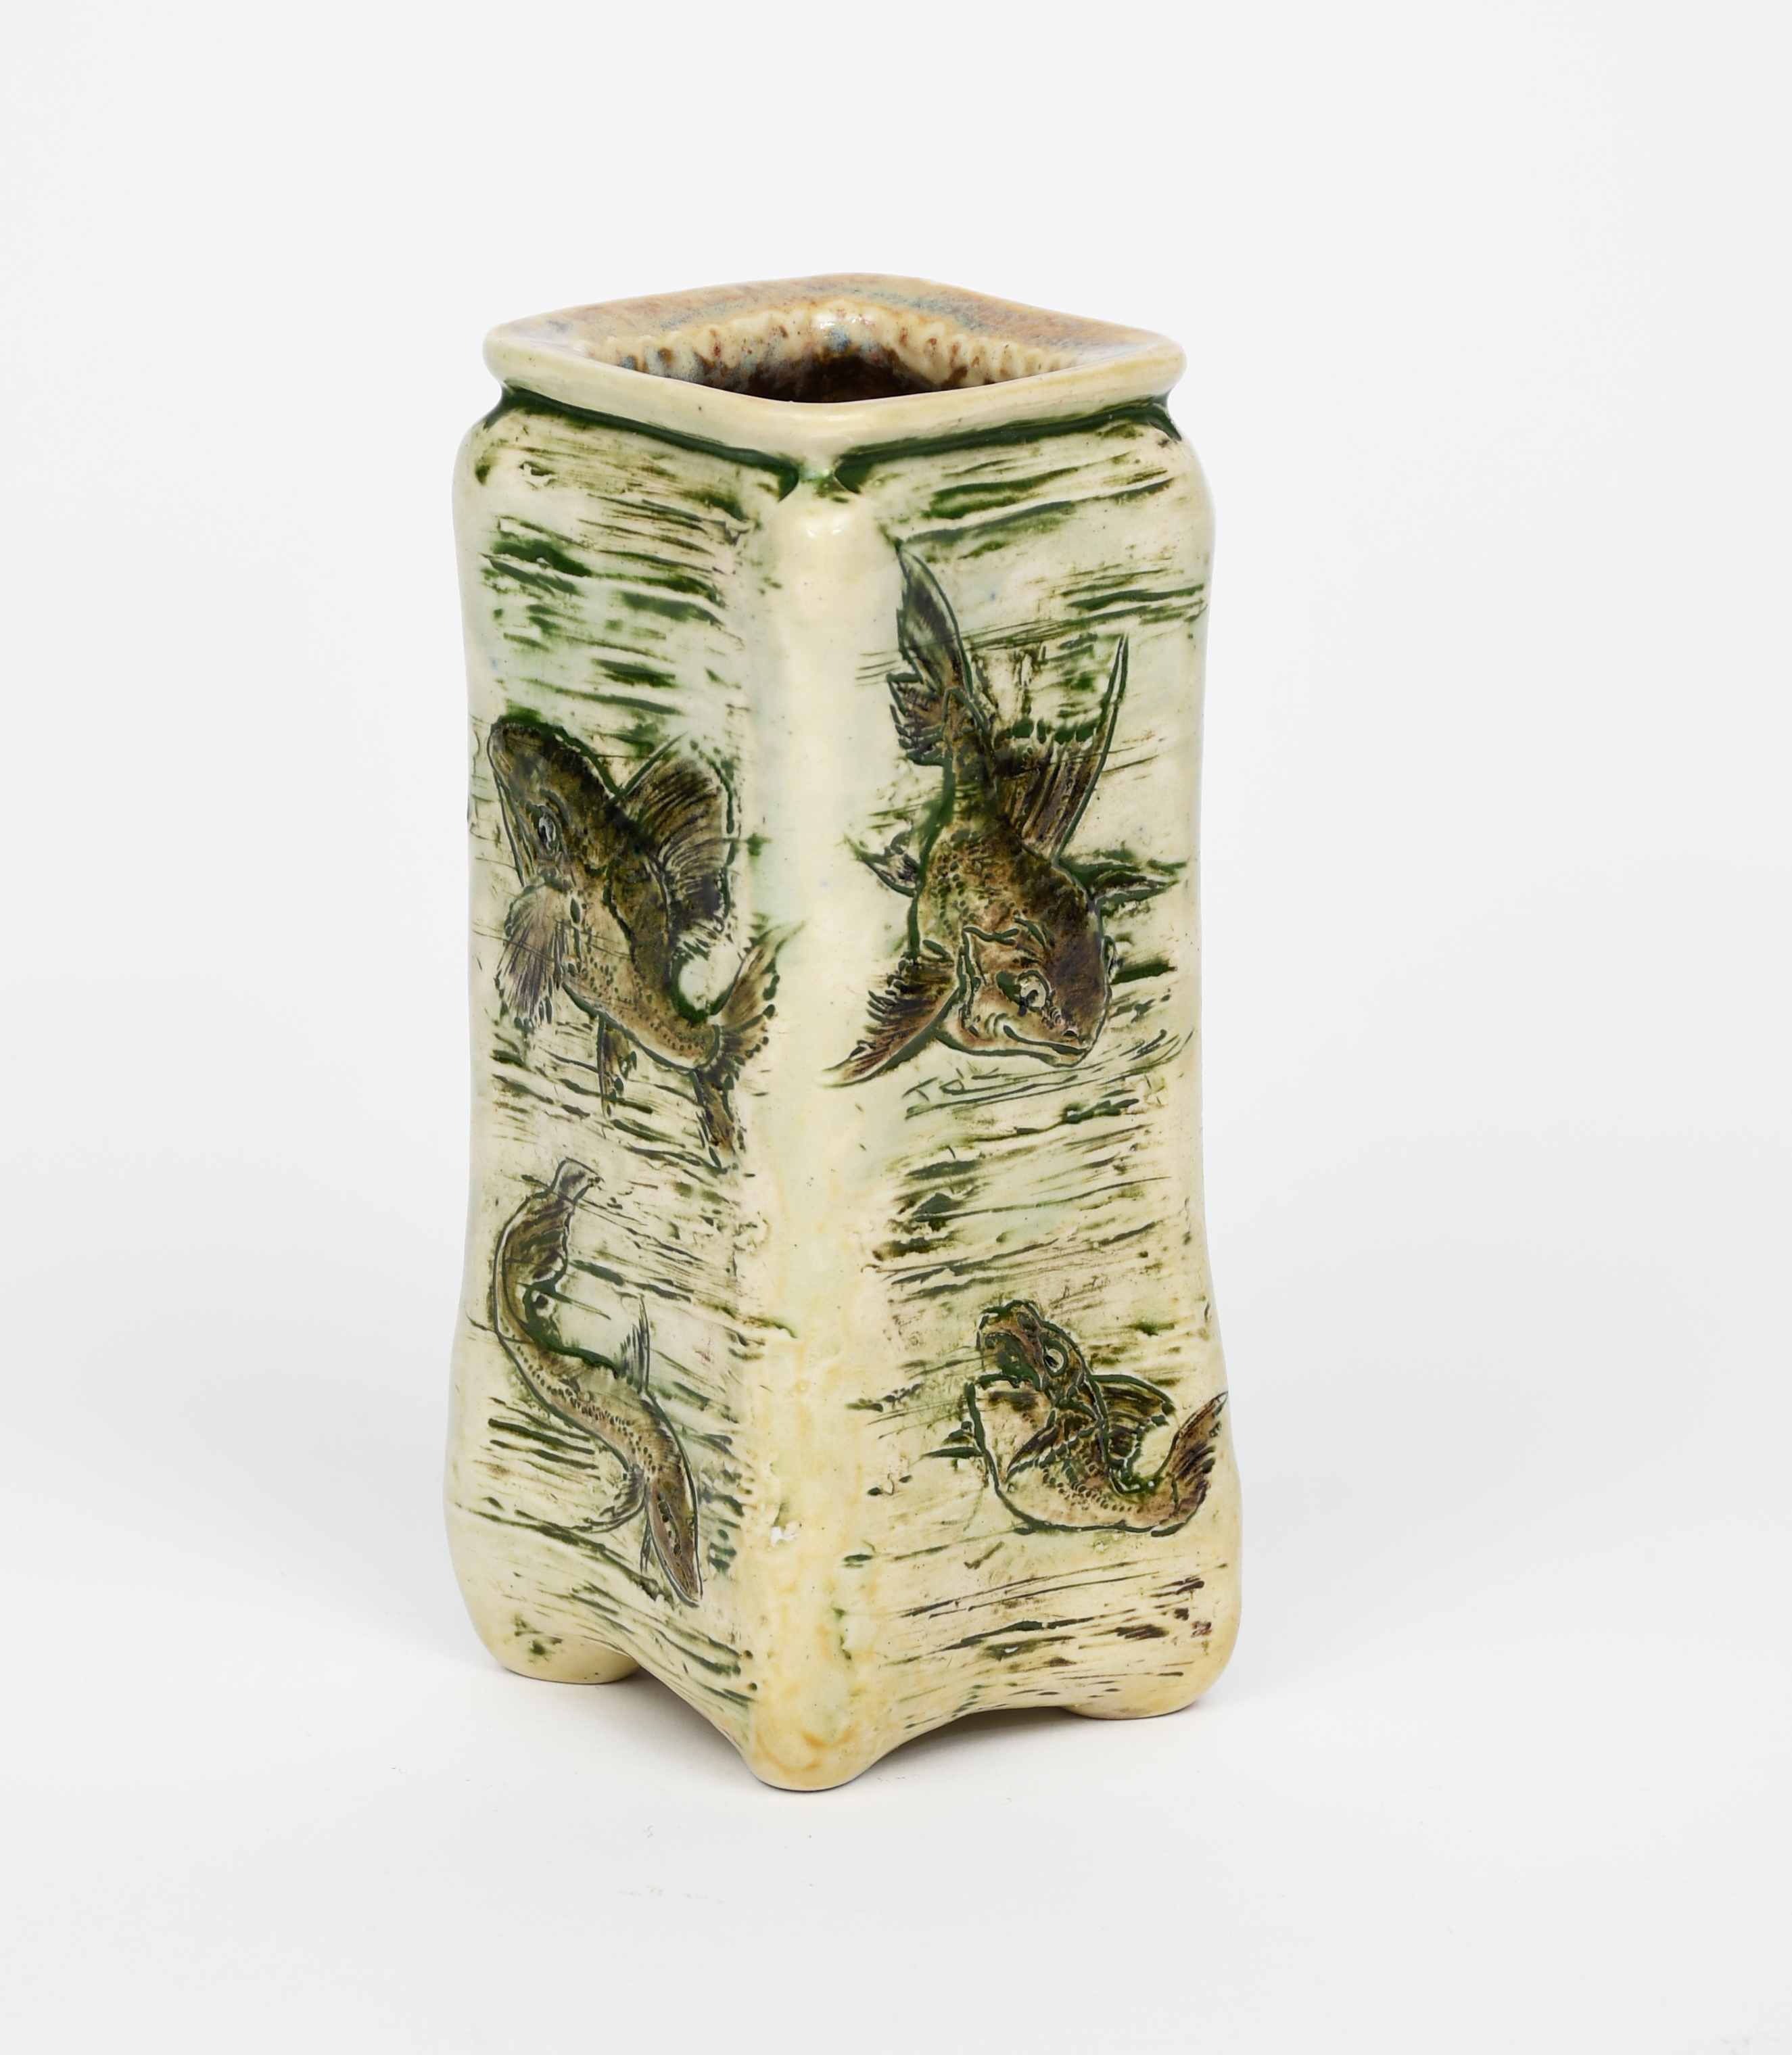 A Martin Brothers stoneware Aquatic vase by Edwin and Walter Martin